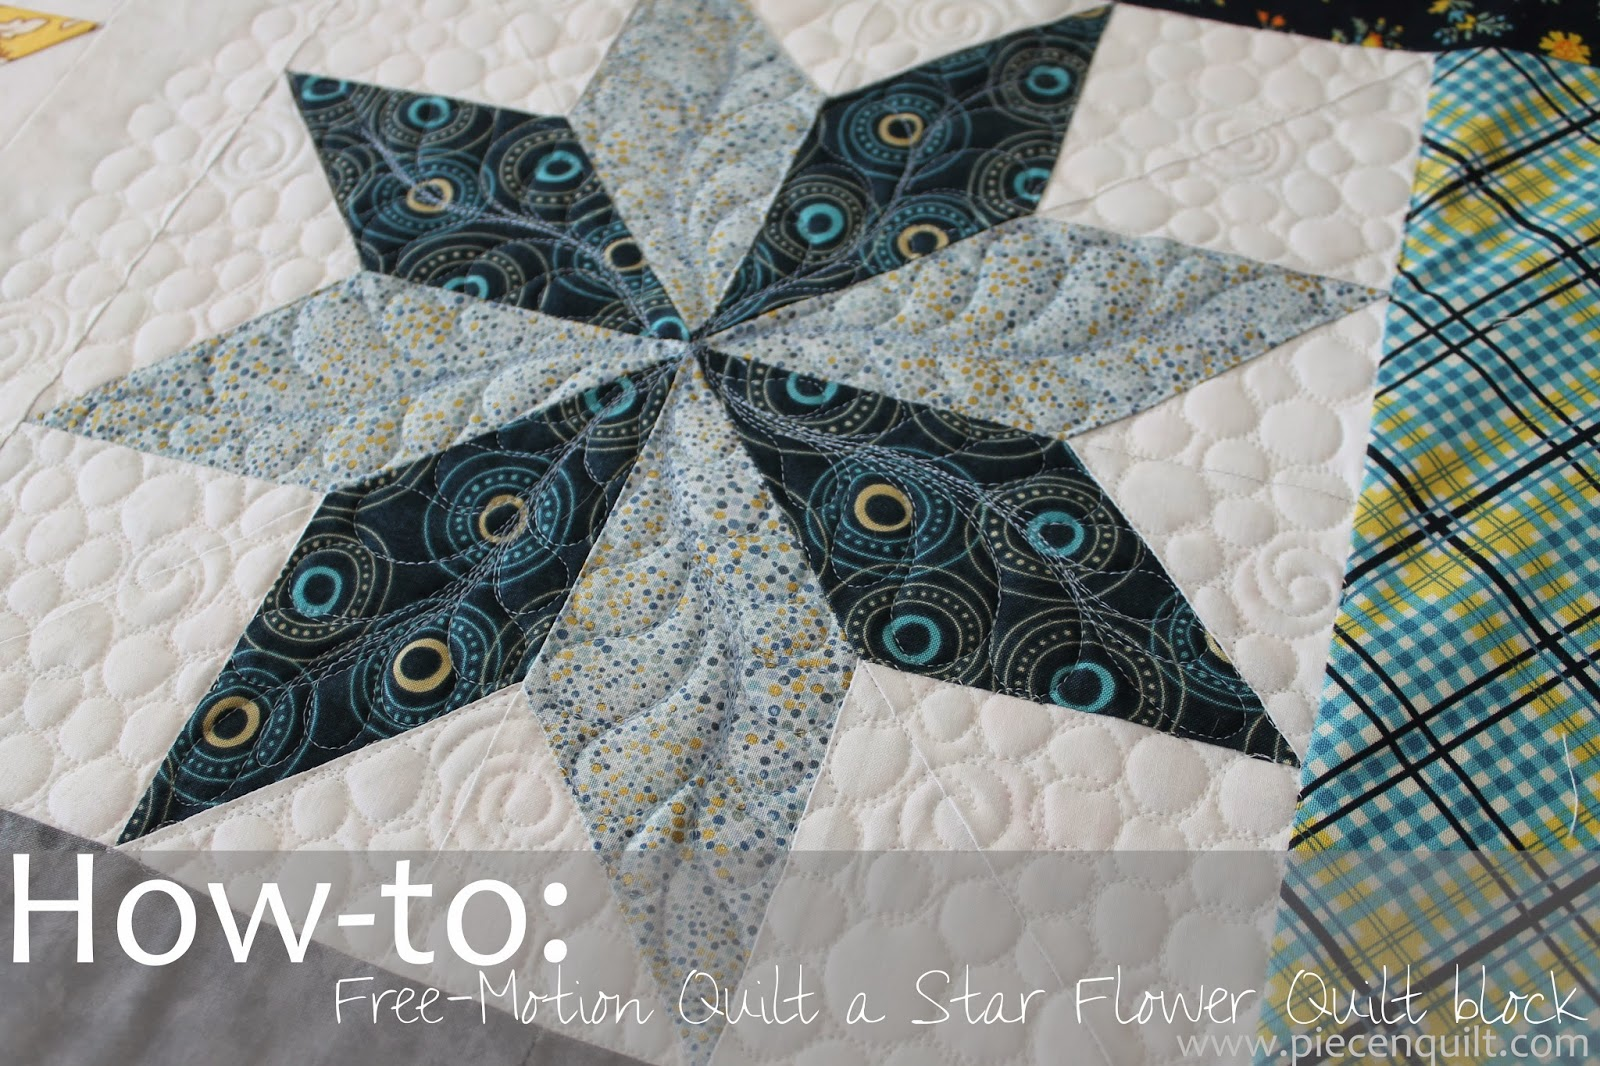 Free Motion Quilting Patterns For Blocks : Piece N Quilt: How-to: Free-Motion Quilt a Star Flower Quilt Block